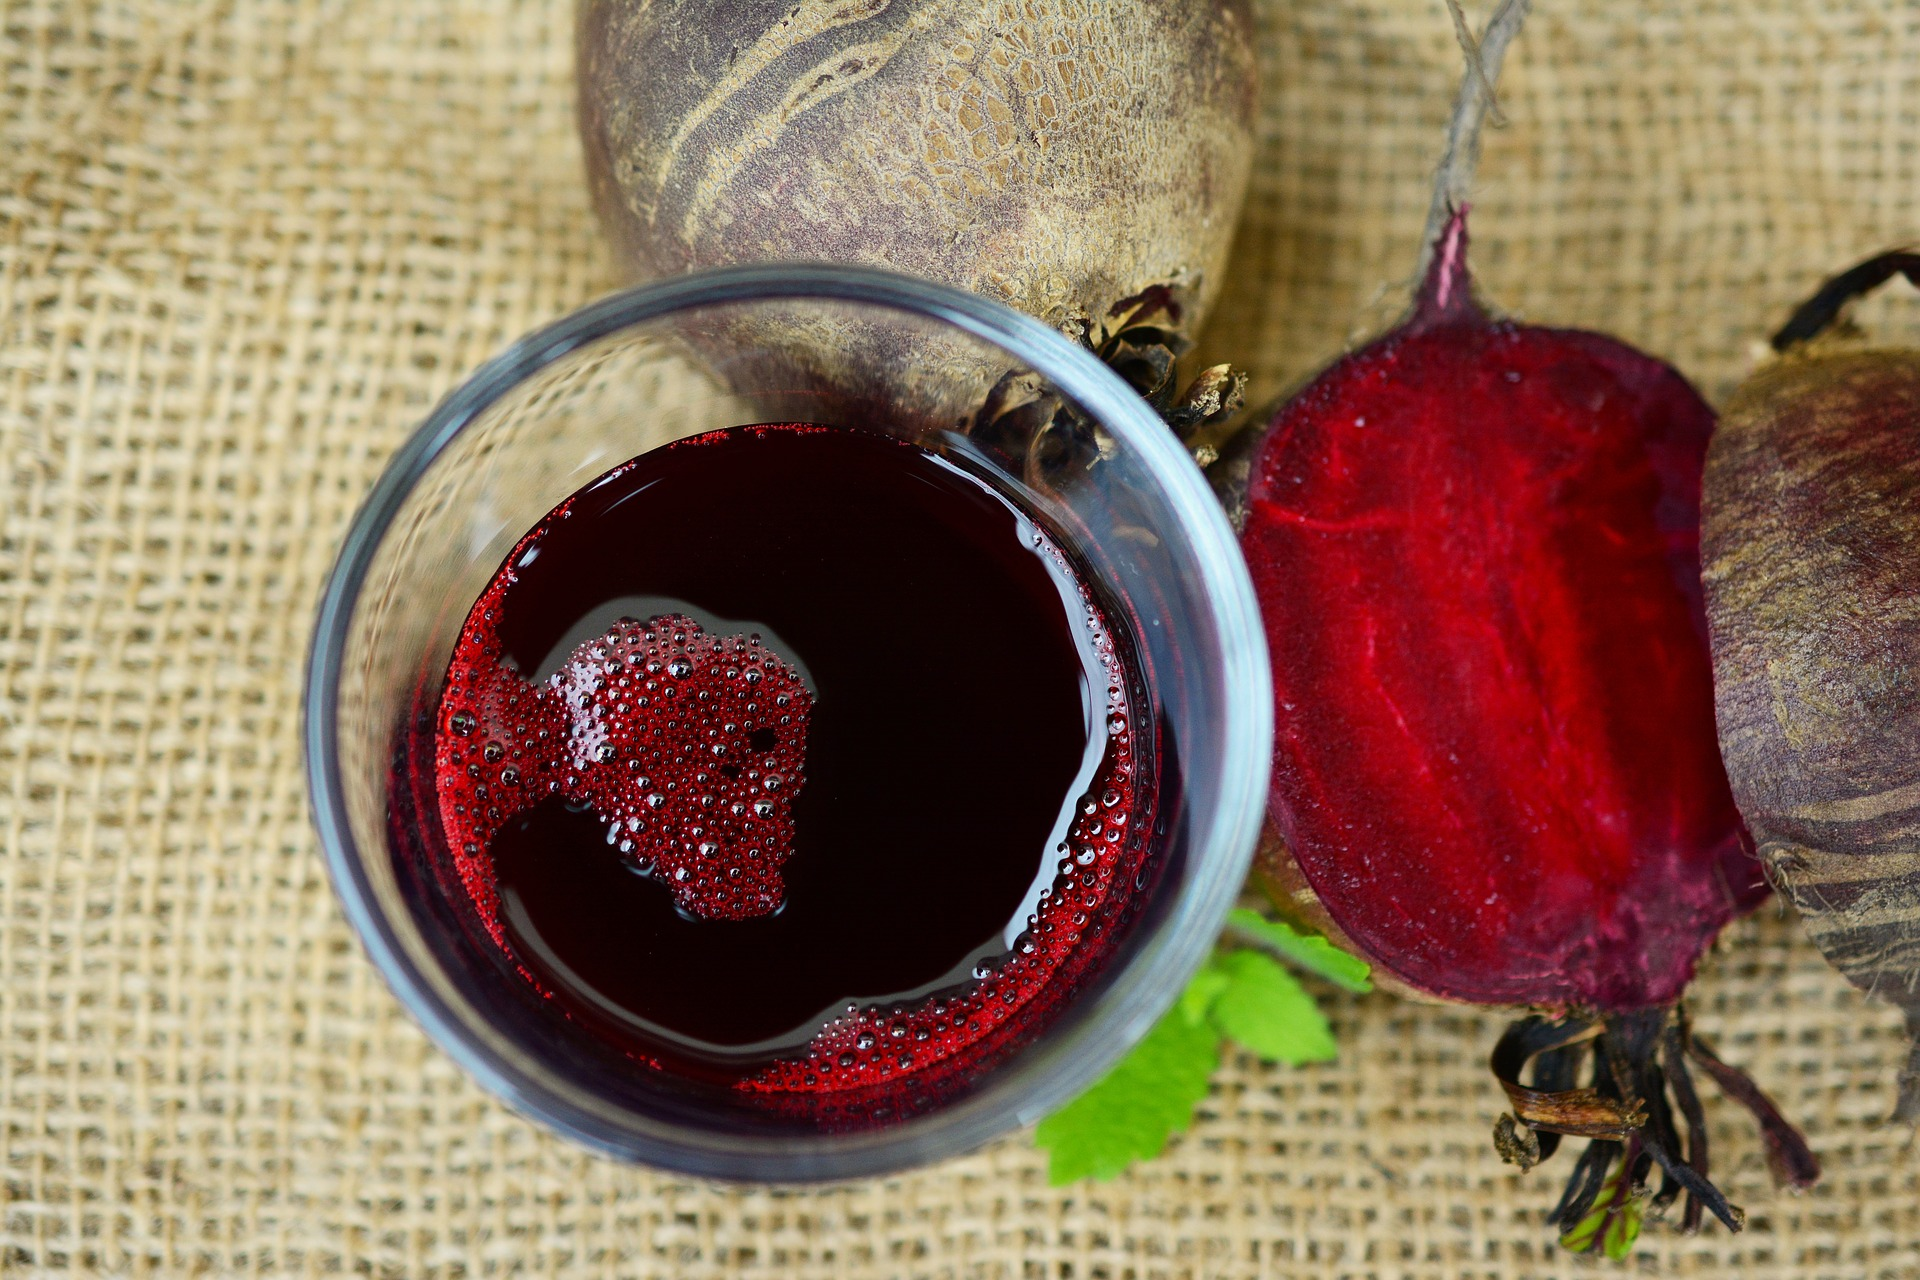 beetroot-juice-2512474_1920.jpg